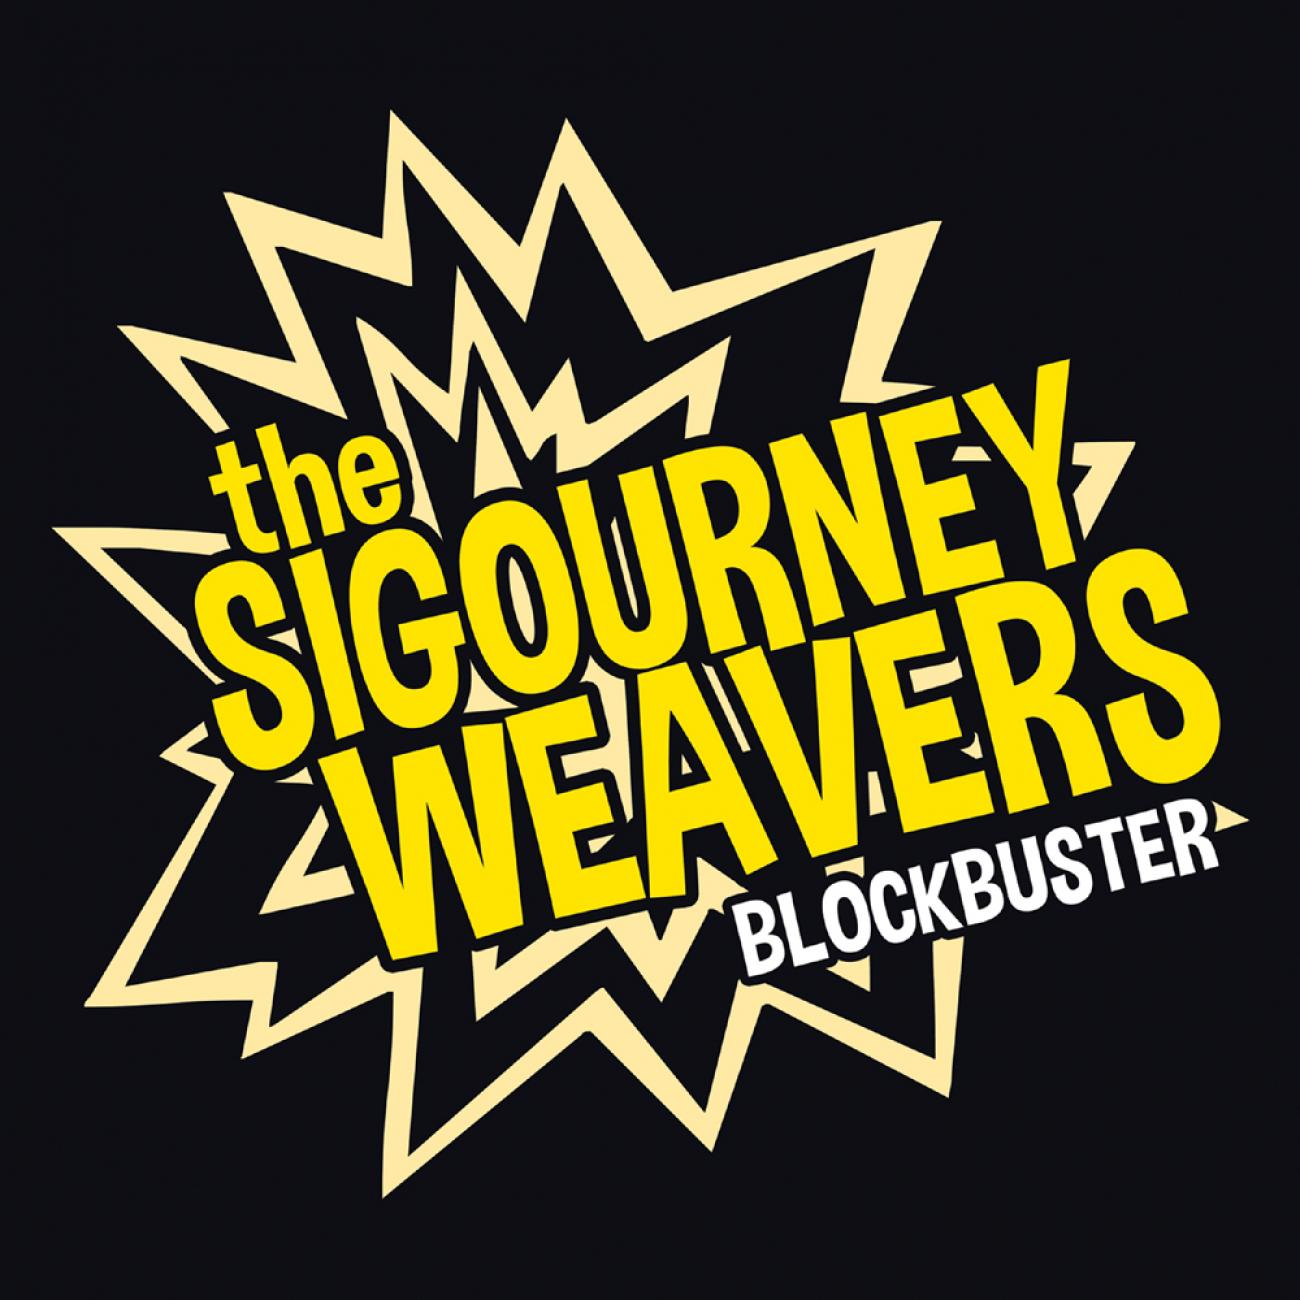 The Sigourney Weavers - Blockbuster